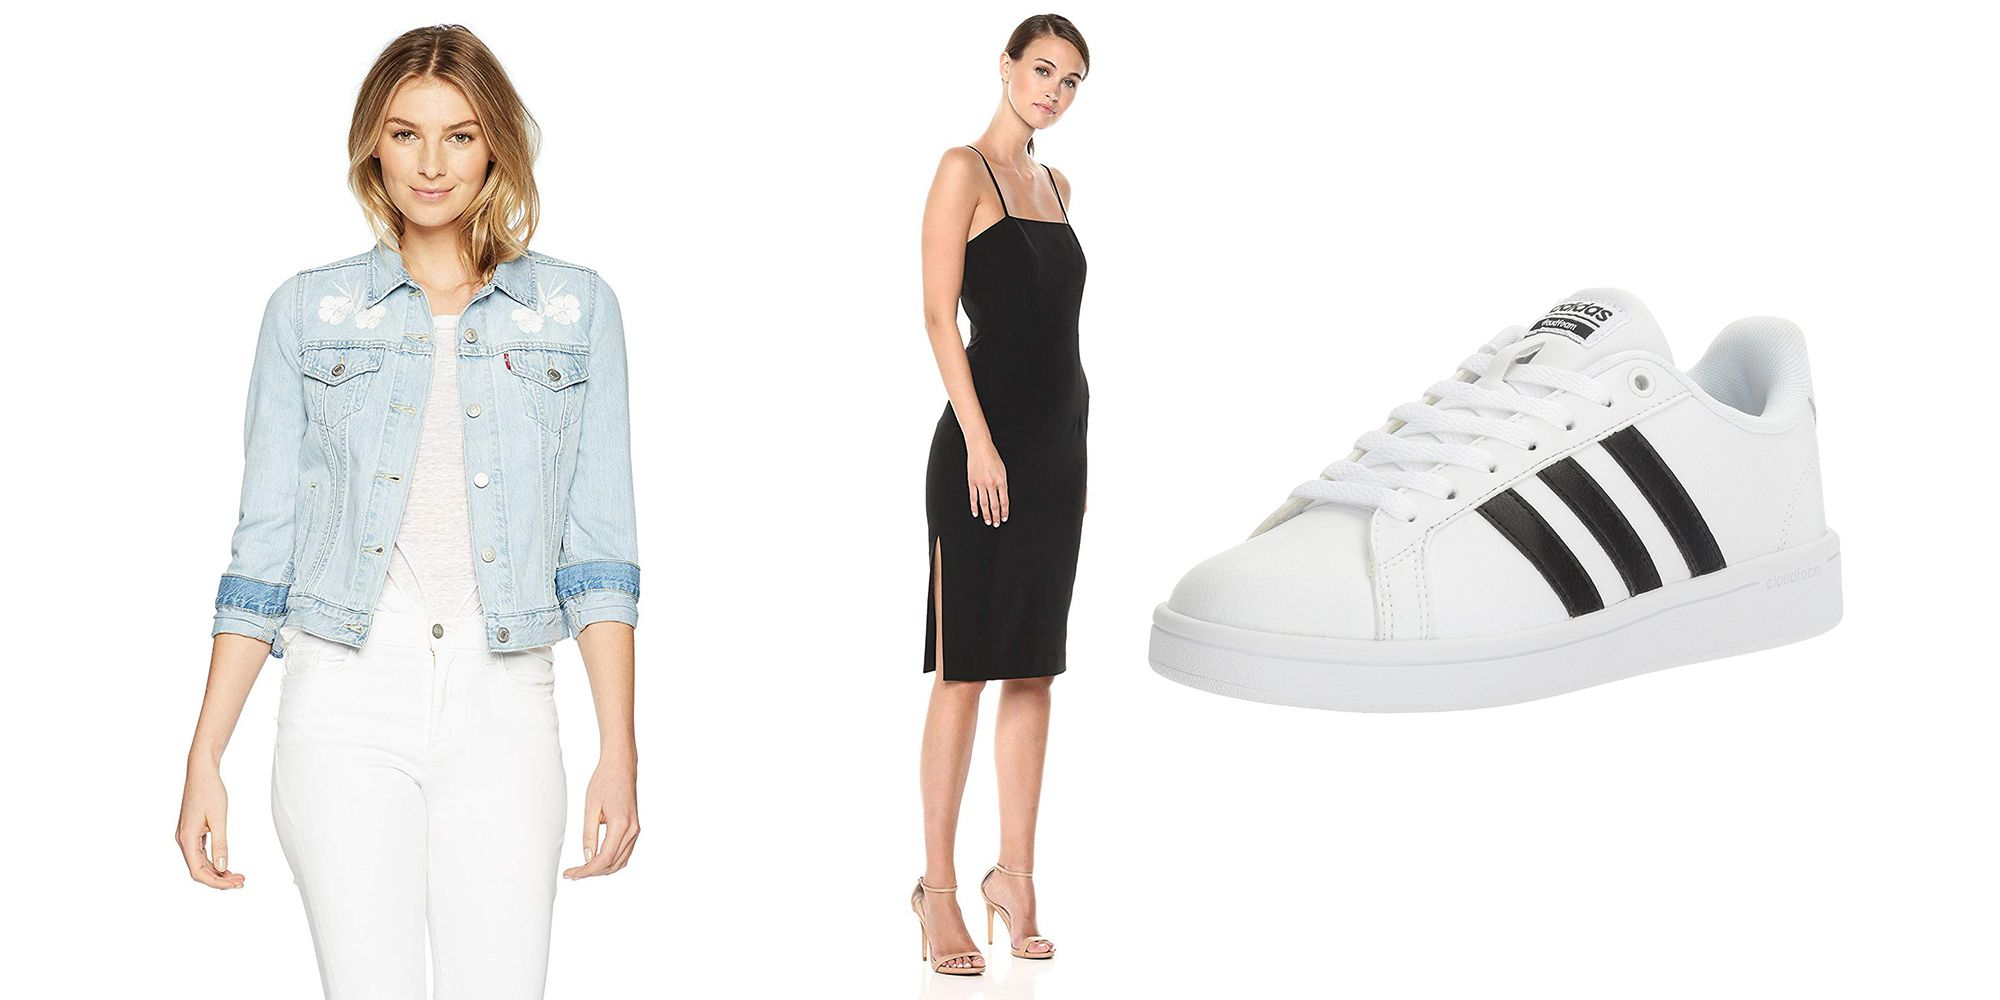 23 Amazon Prime Day Fashion Deals You Need To Jump On ASAP